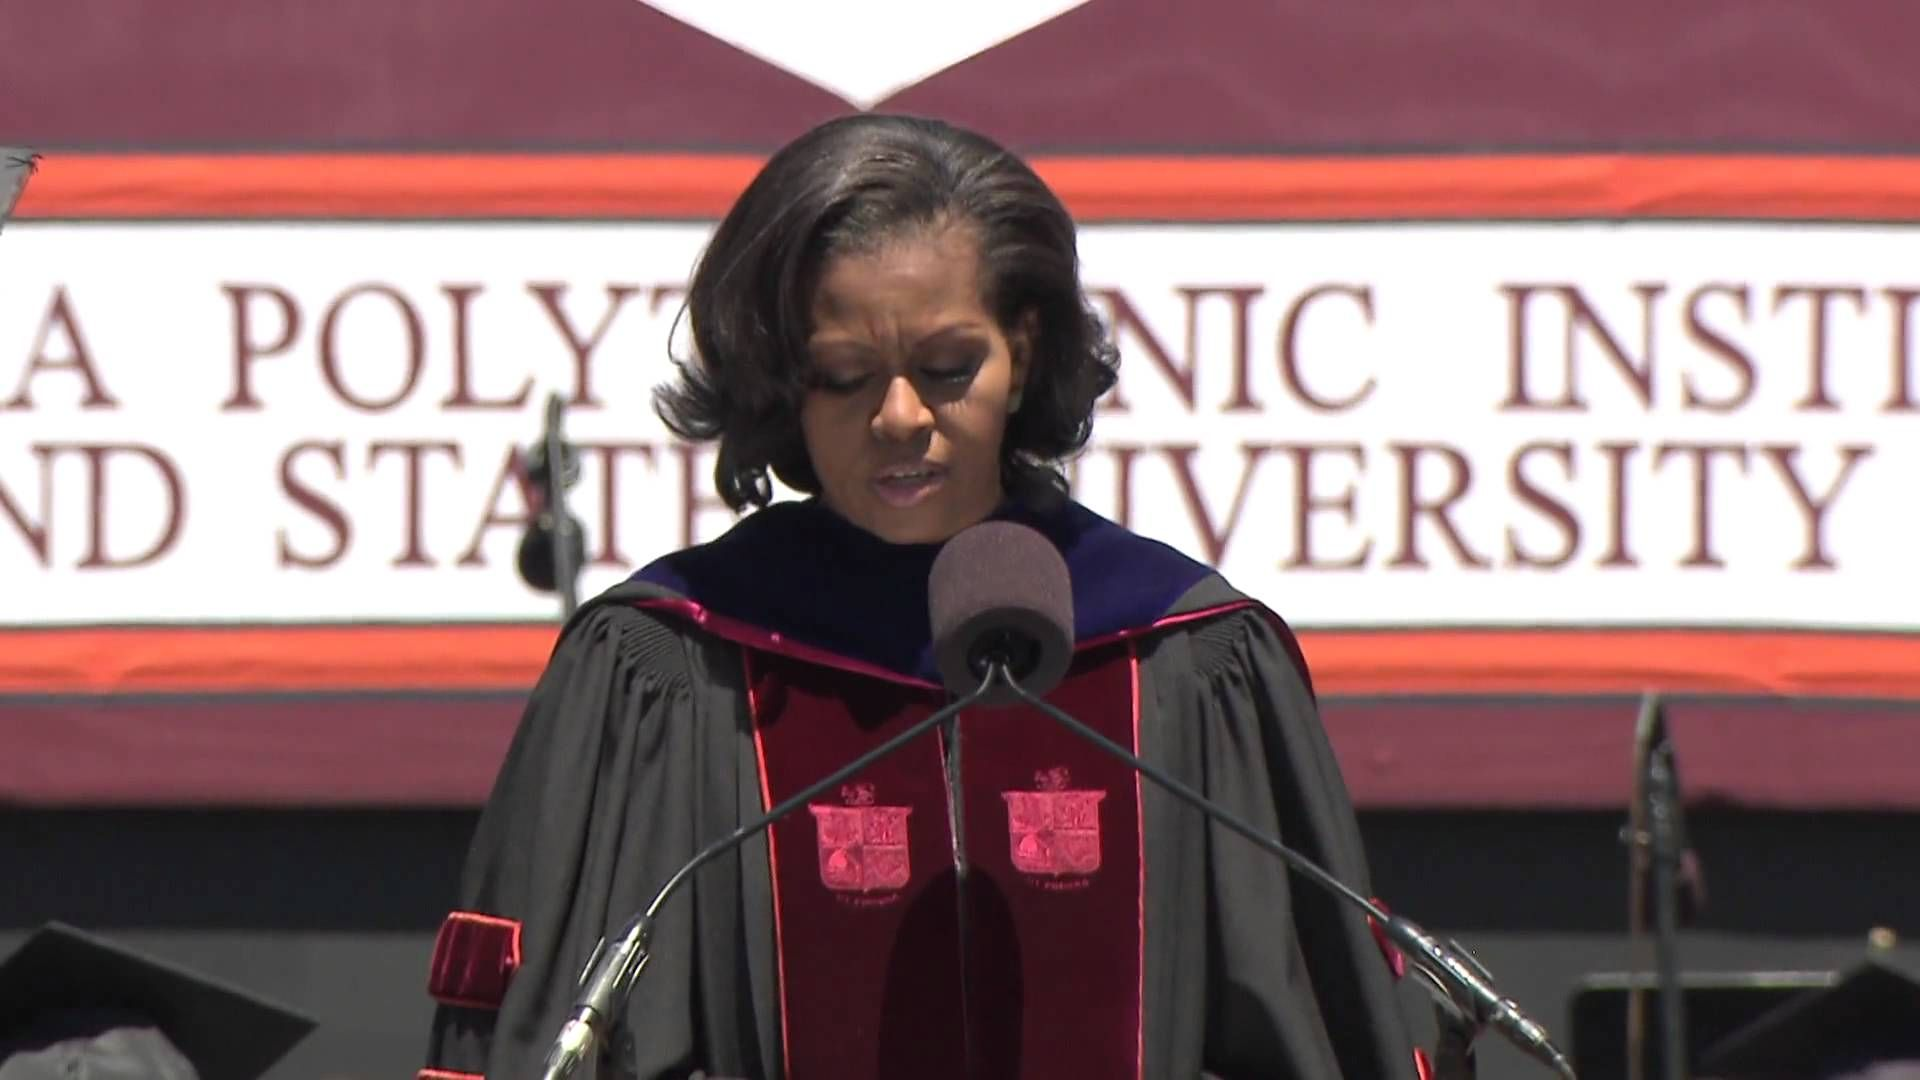 Virginia Tech Michelle Obama's Commencement Address. First